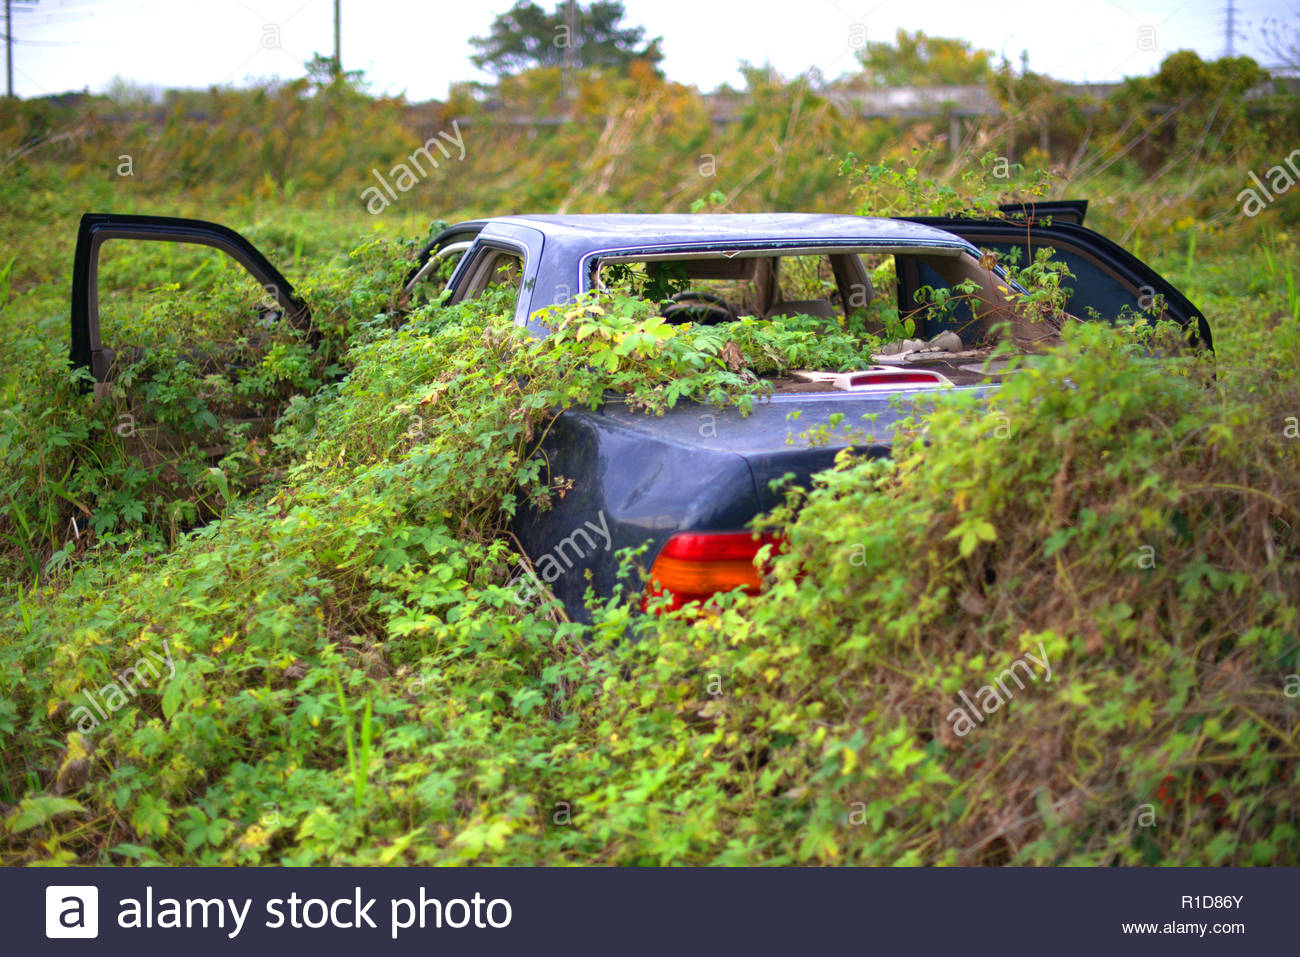 Abandoned overgrown car in field. - Stock Image